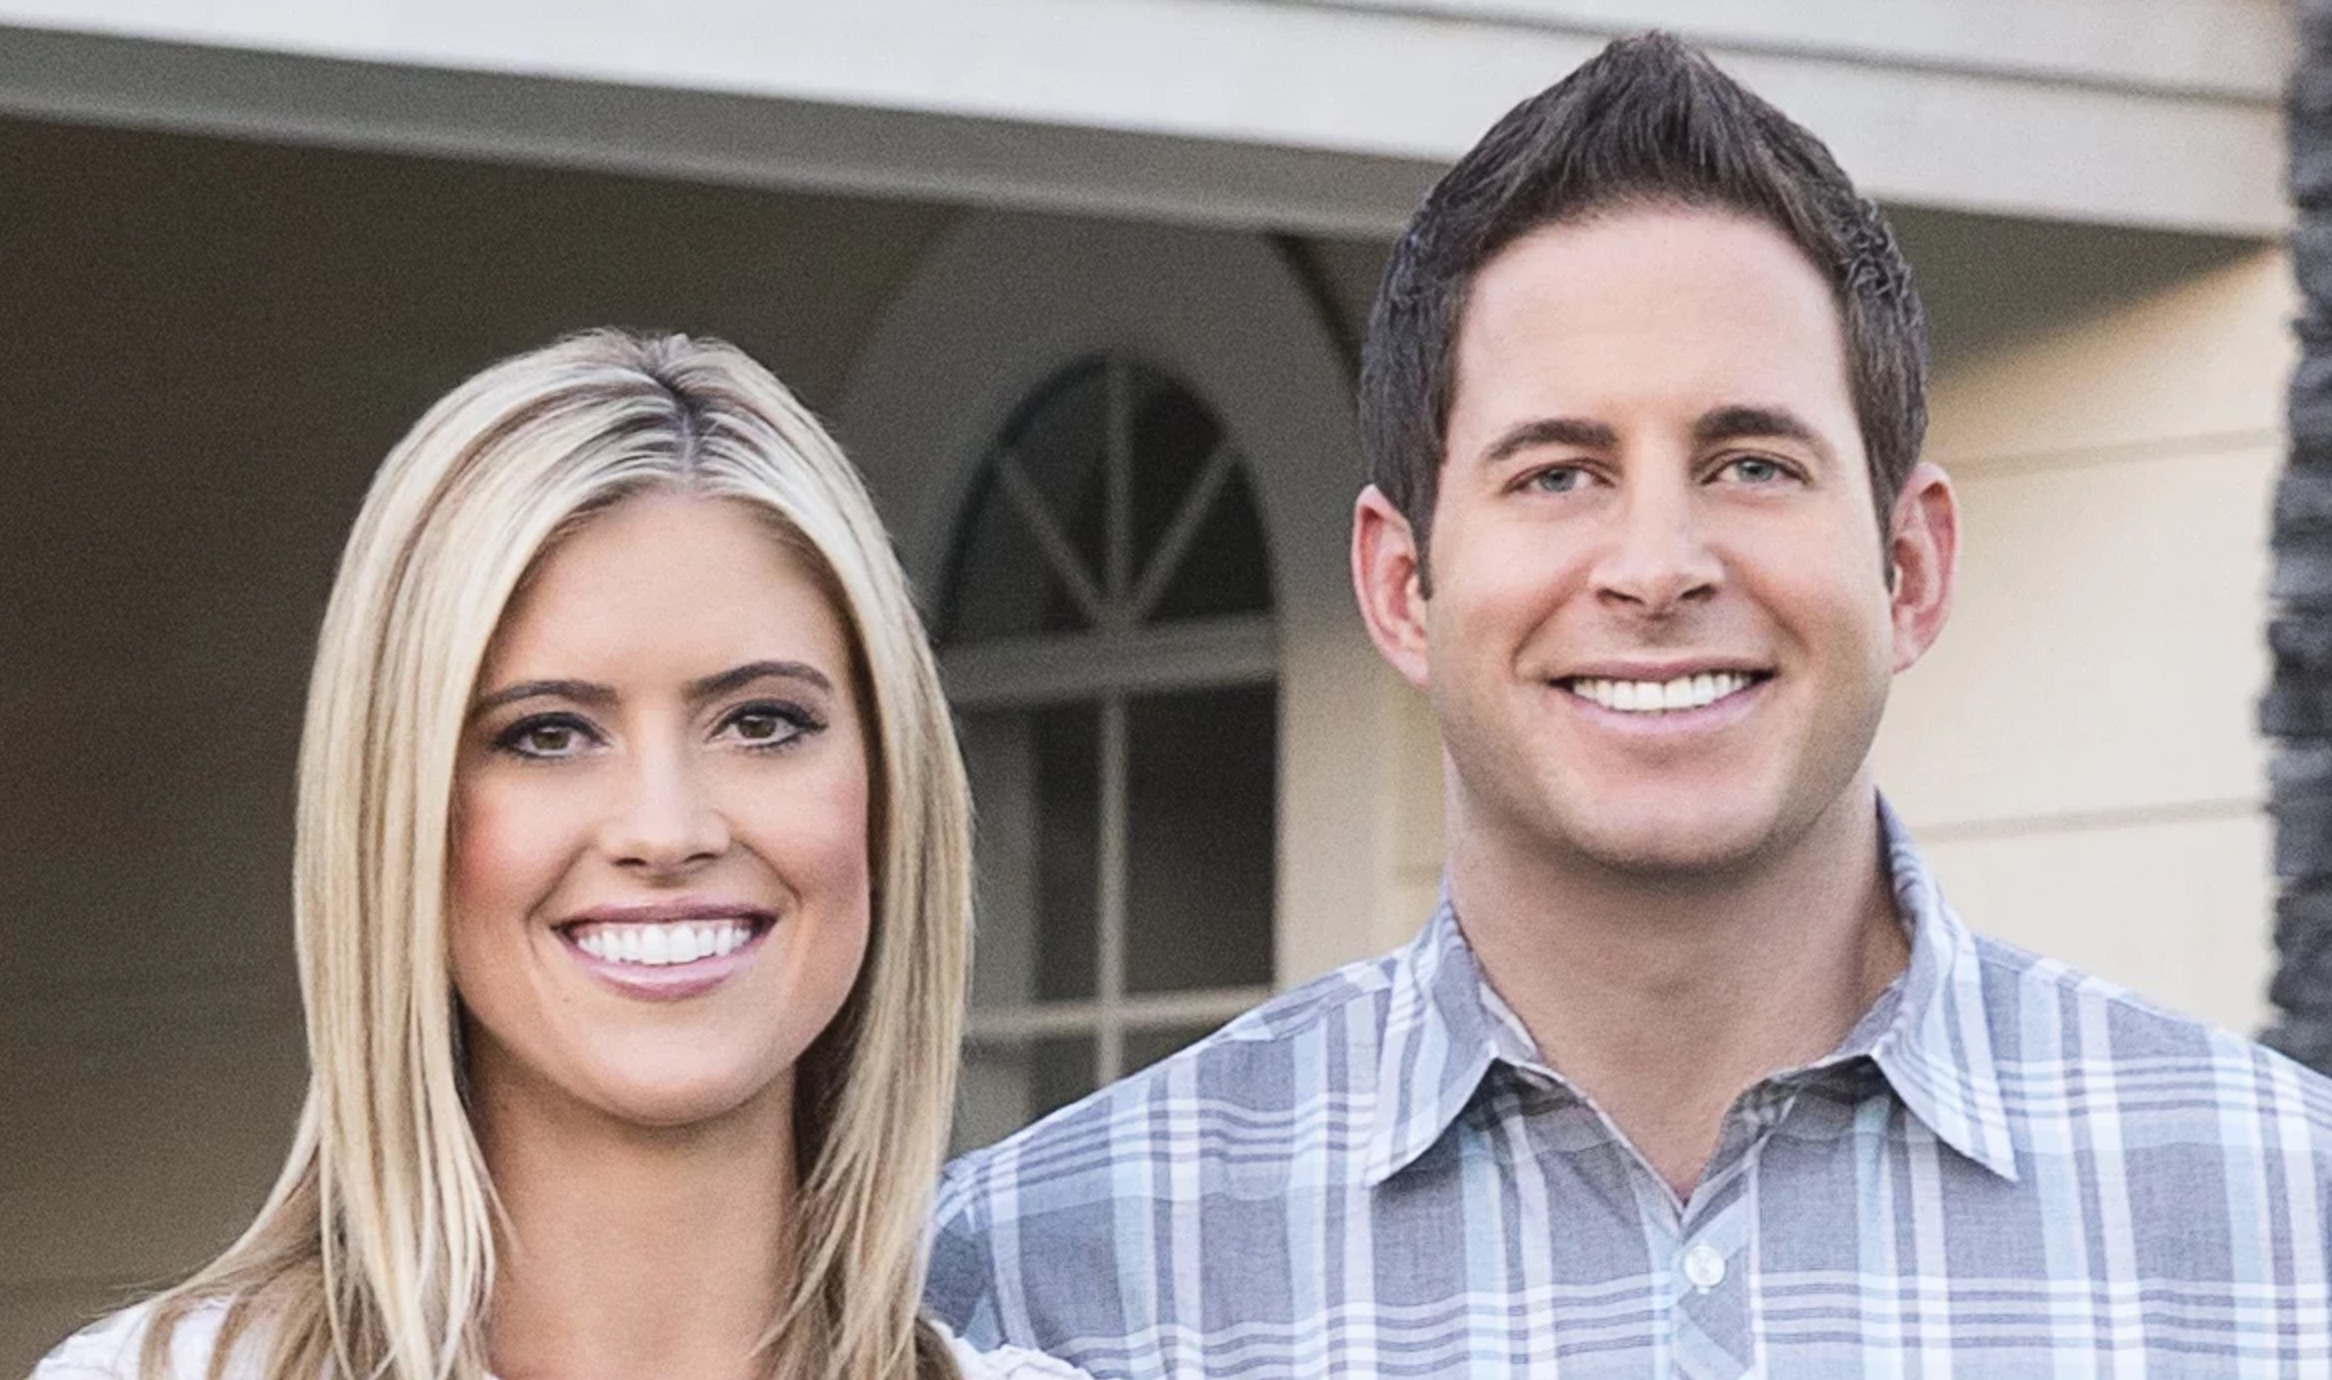 Hgtv S Flip Or Flop Stars Announce Split Months After Police Called To Home Wreg Com